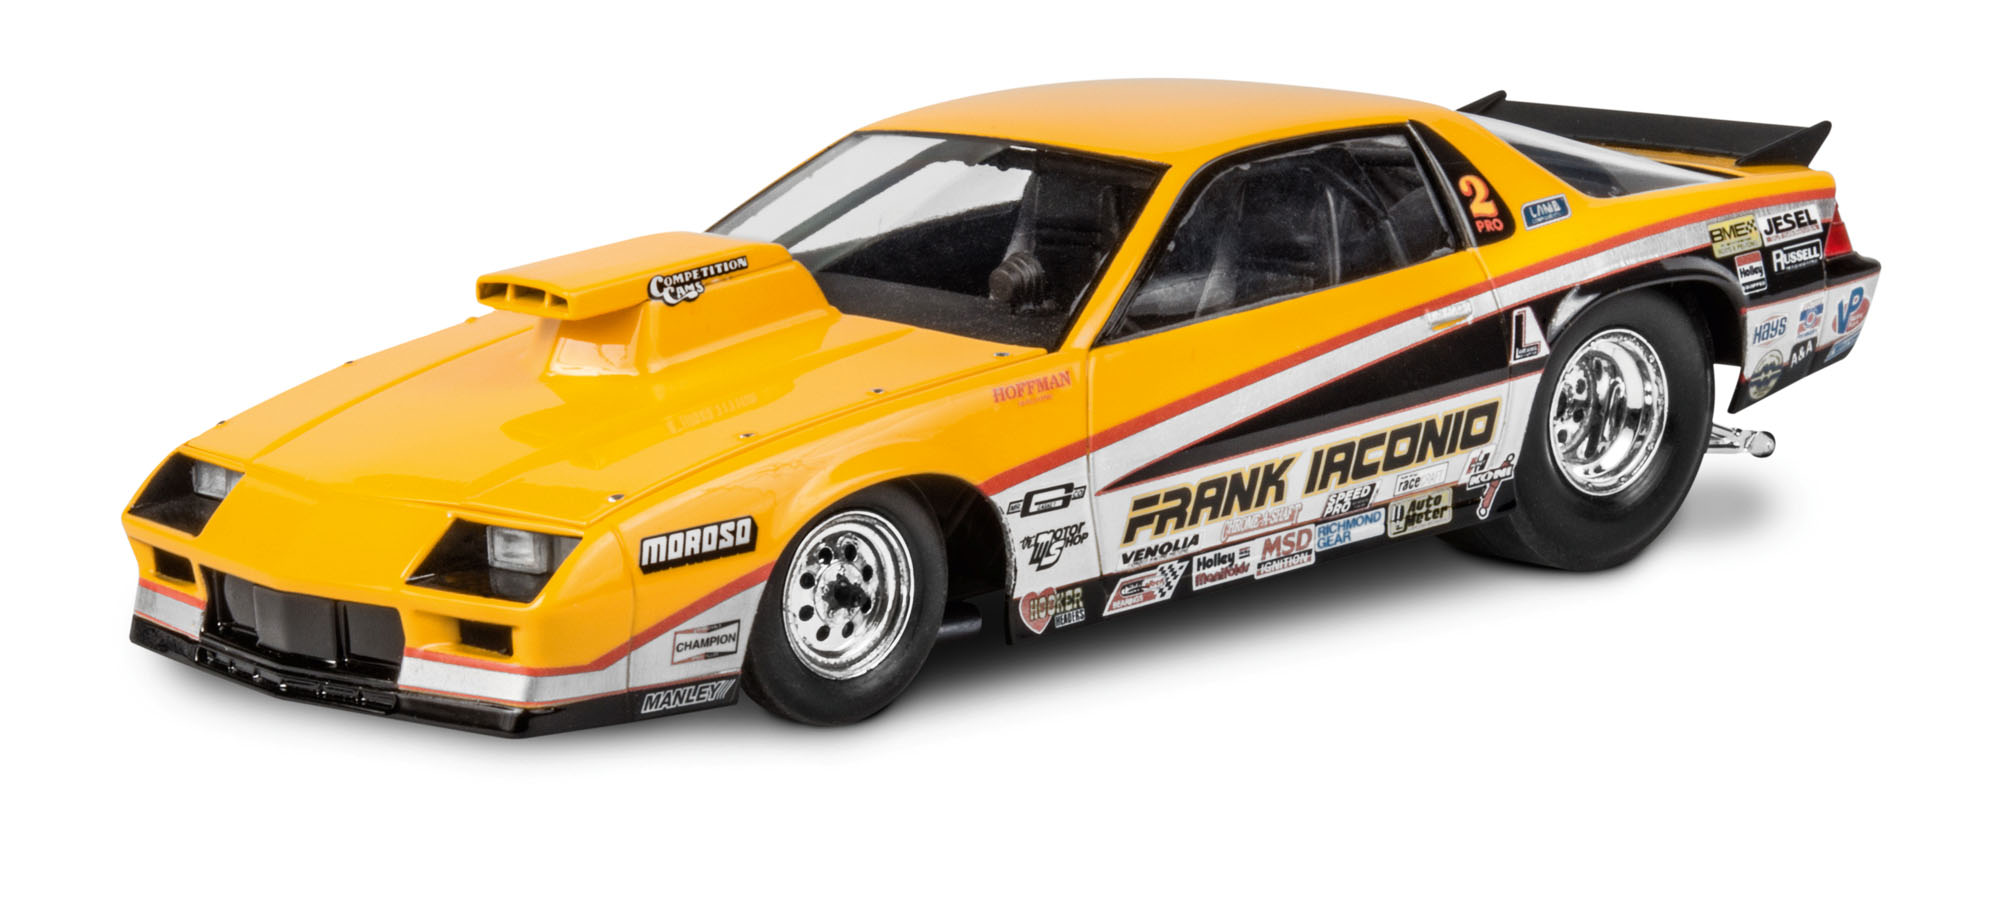 Revell Official Website Of Revell Gmbh Iaconio Chevy Camaro Pro Stock